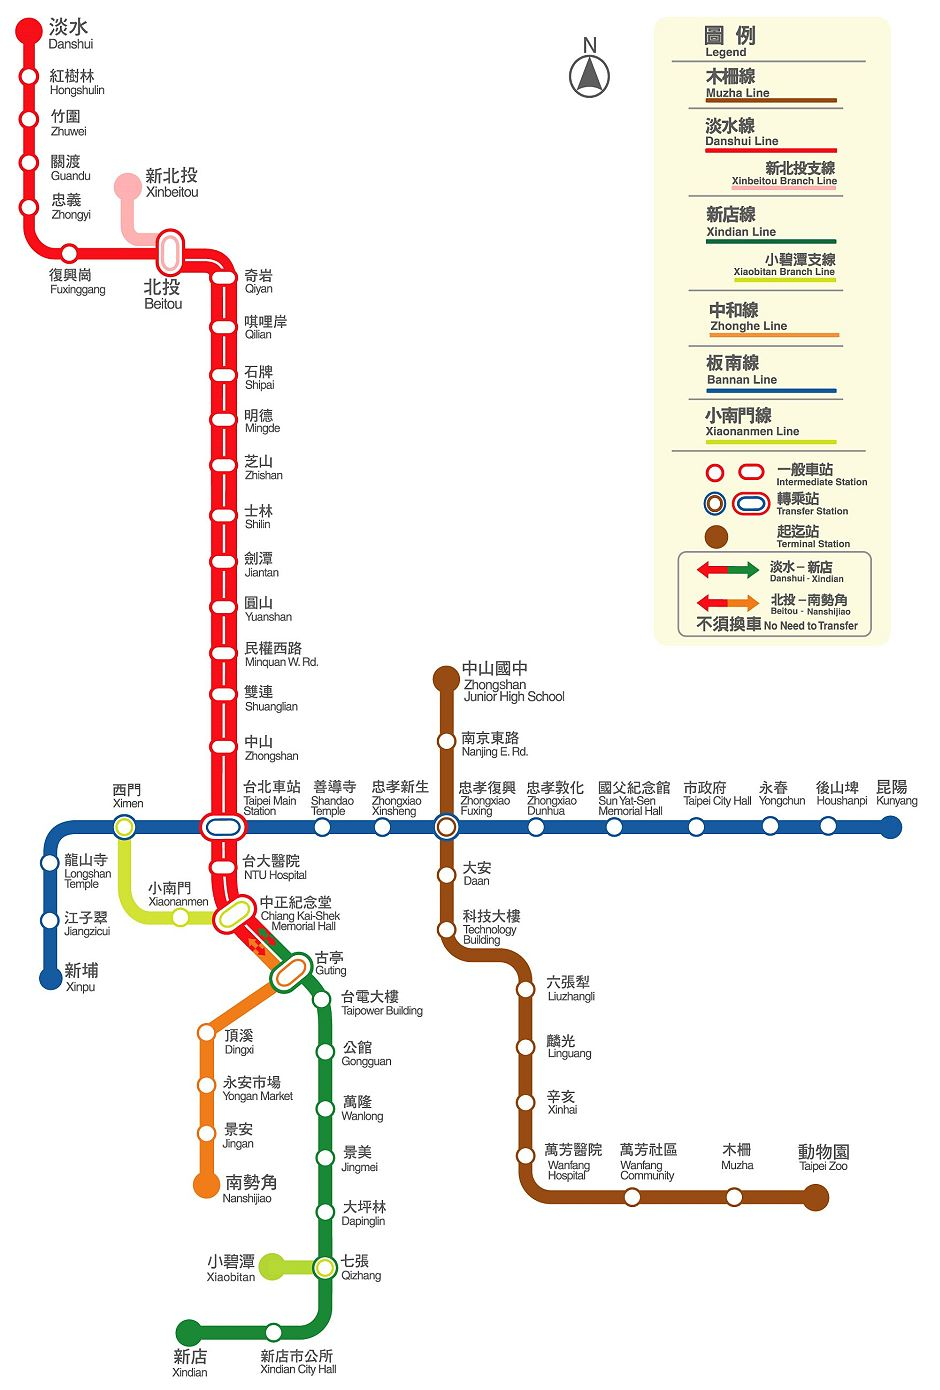 map of Taipei MRT lines